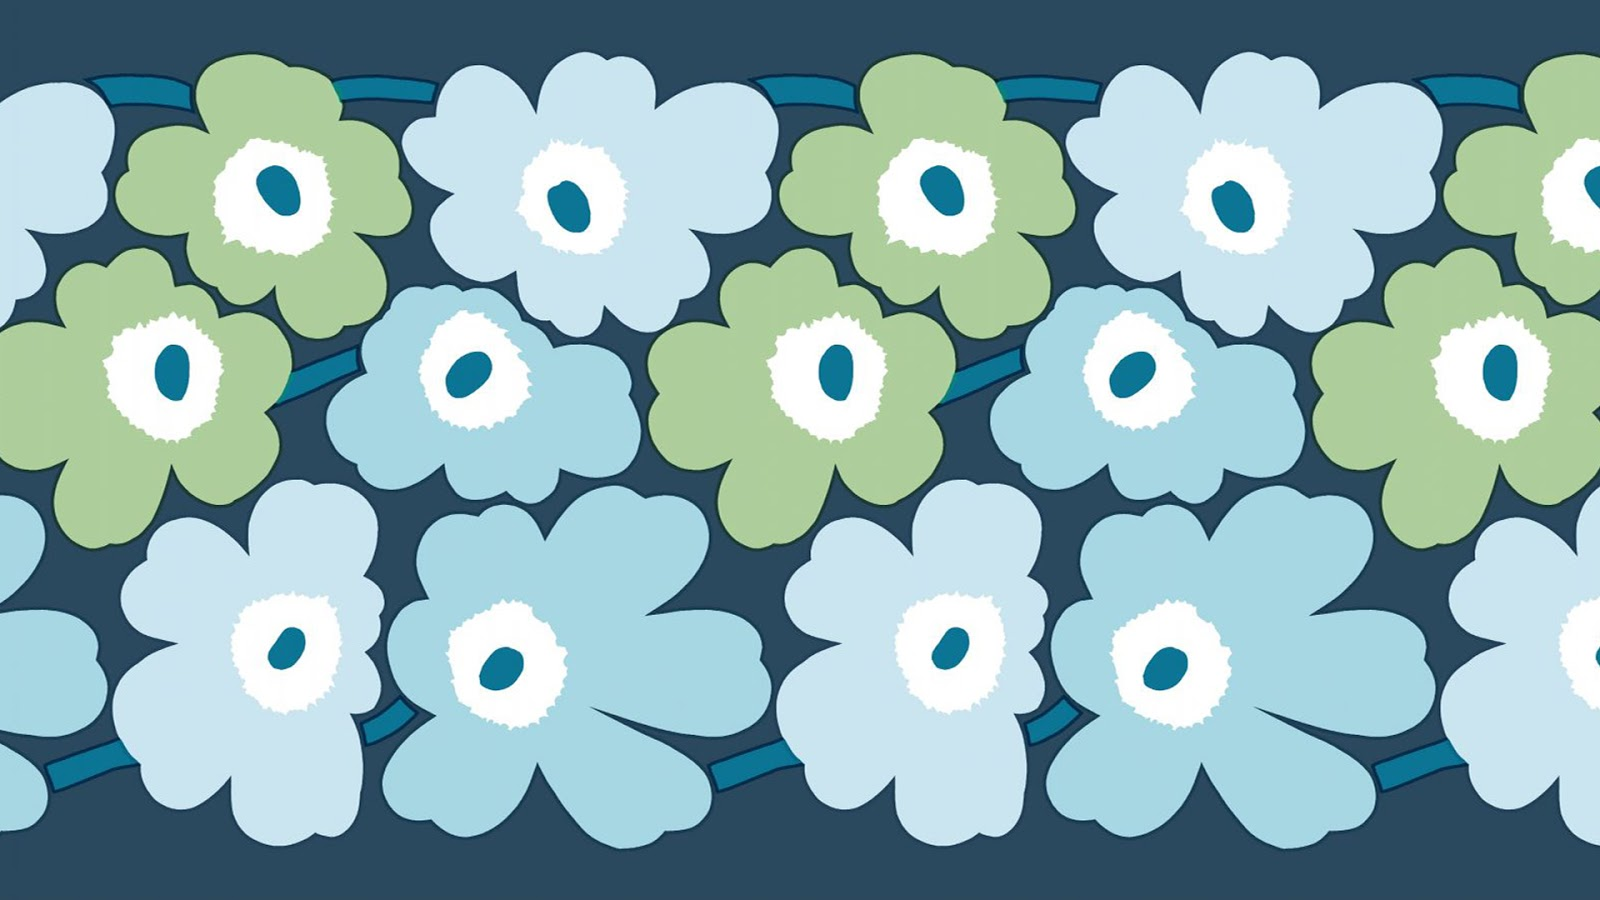 If It S Meant To Be It Will Be Paaryna Marimekko Wallpaper